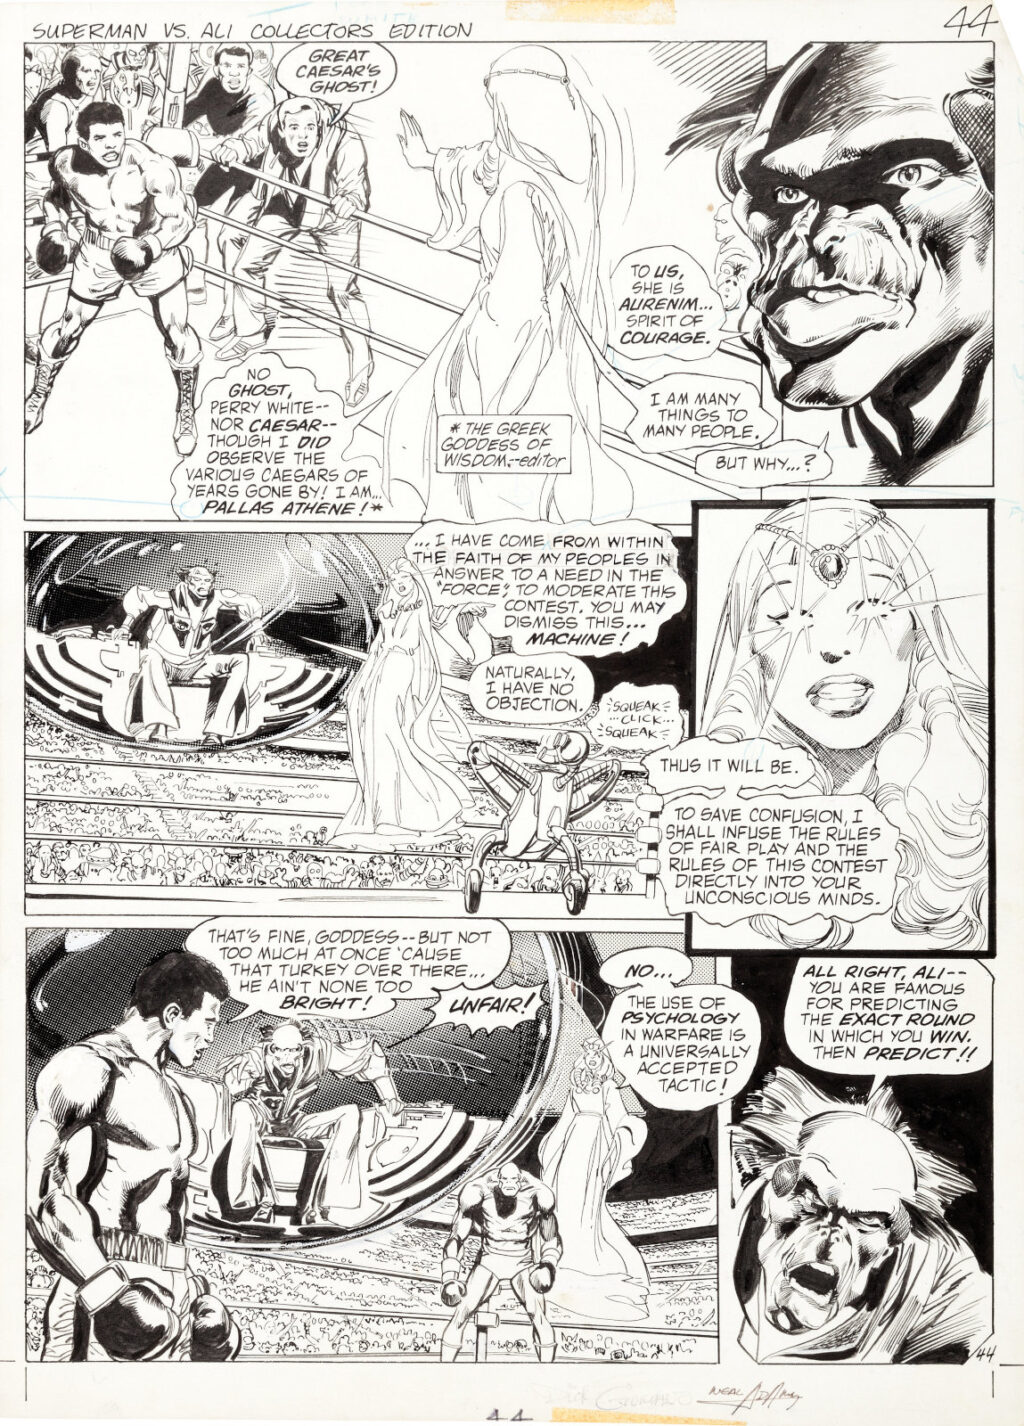 All New Collectors Edition C 56 page 44 by Neal Adams and Dick Giordano